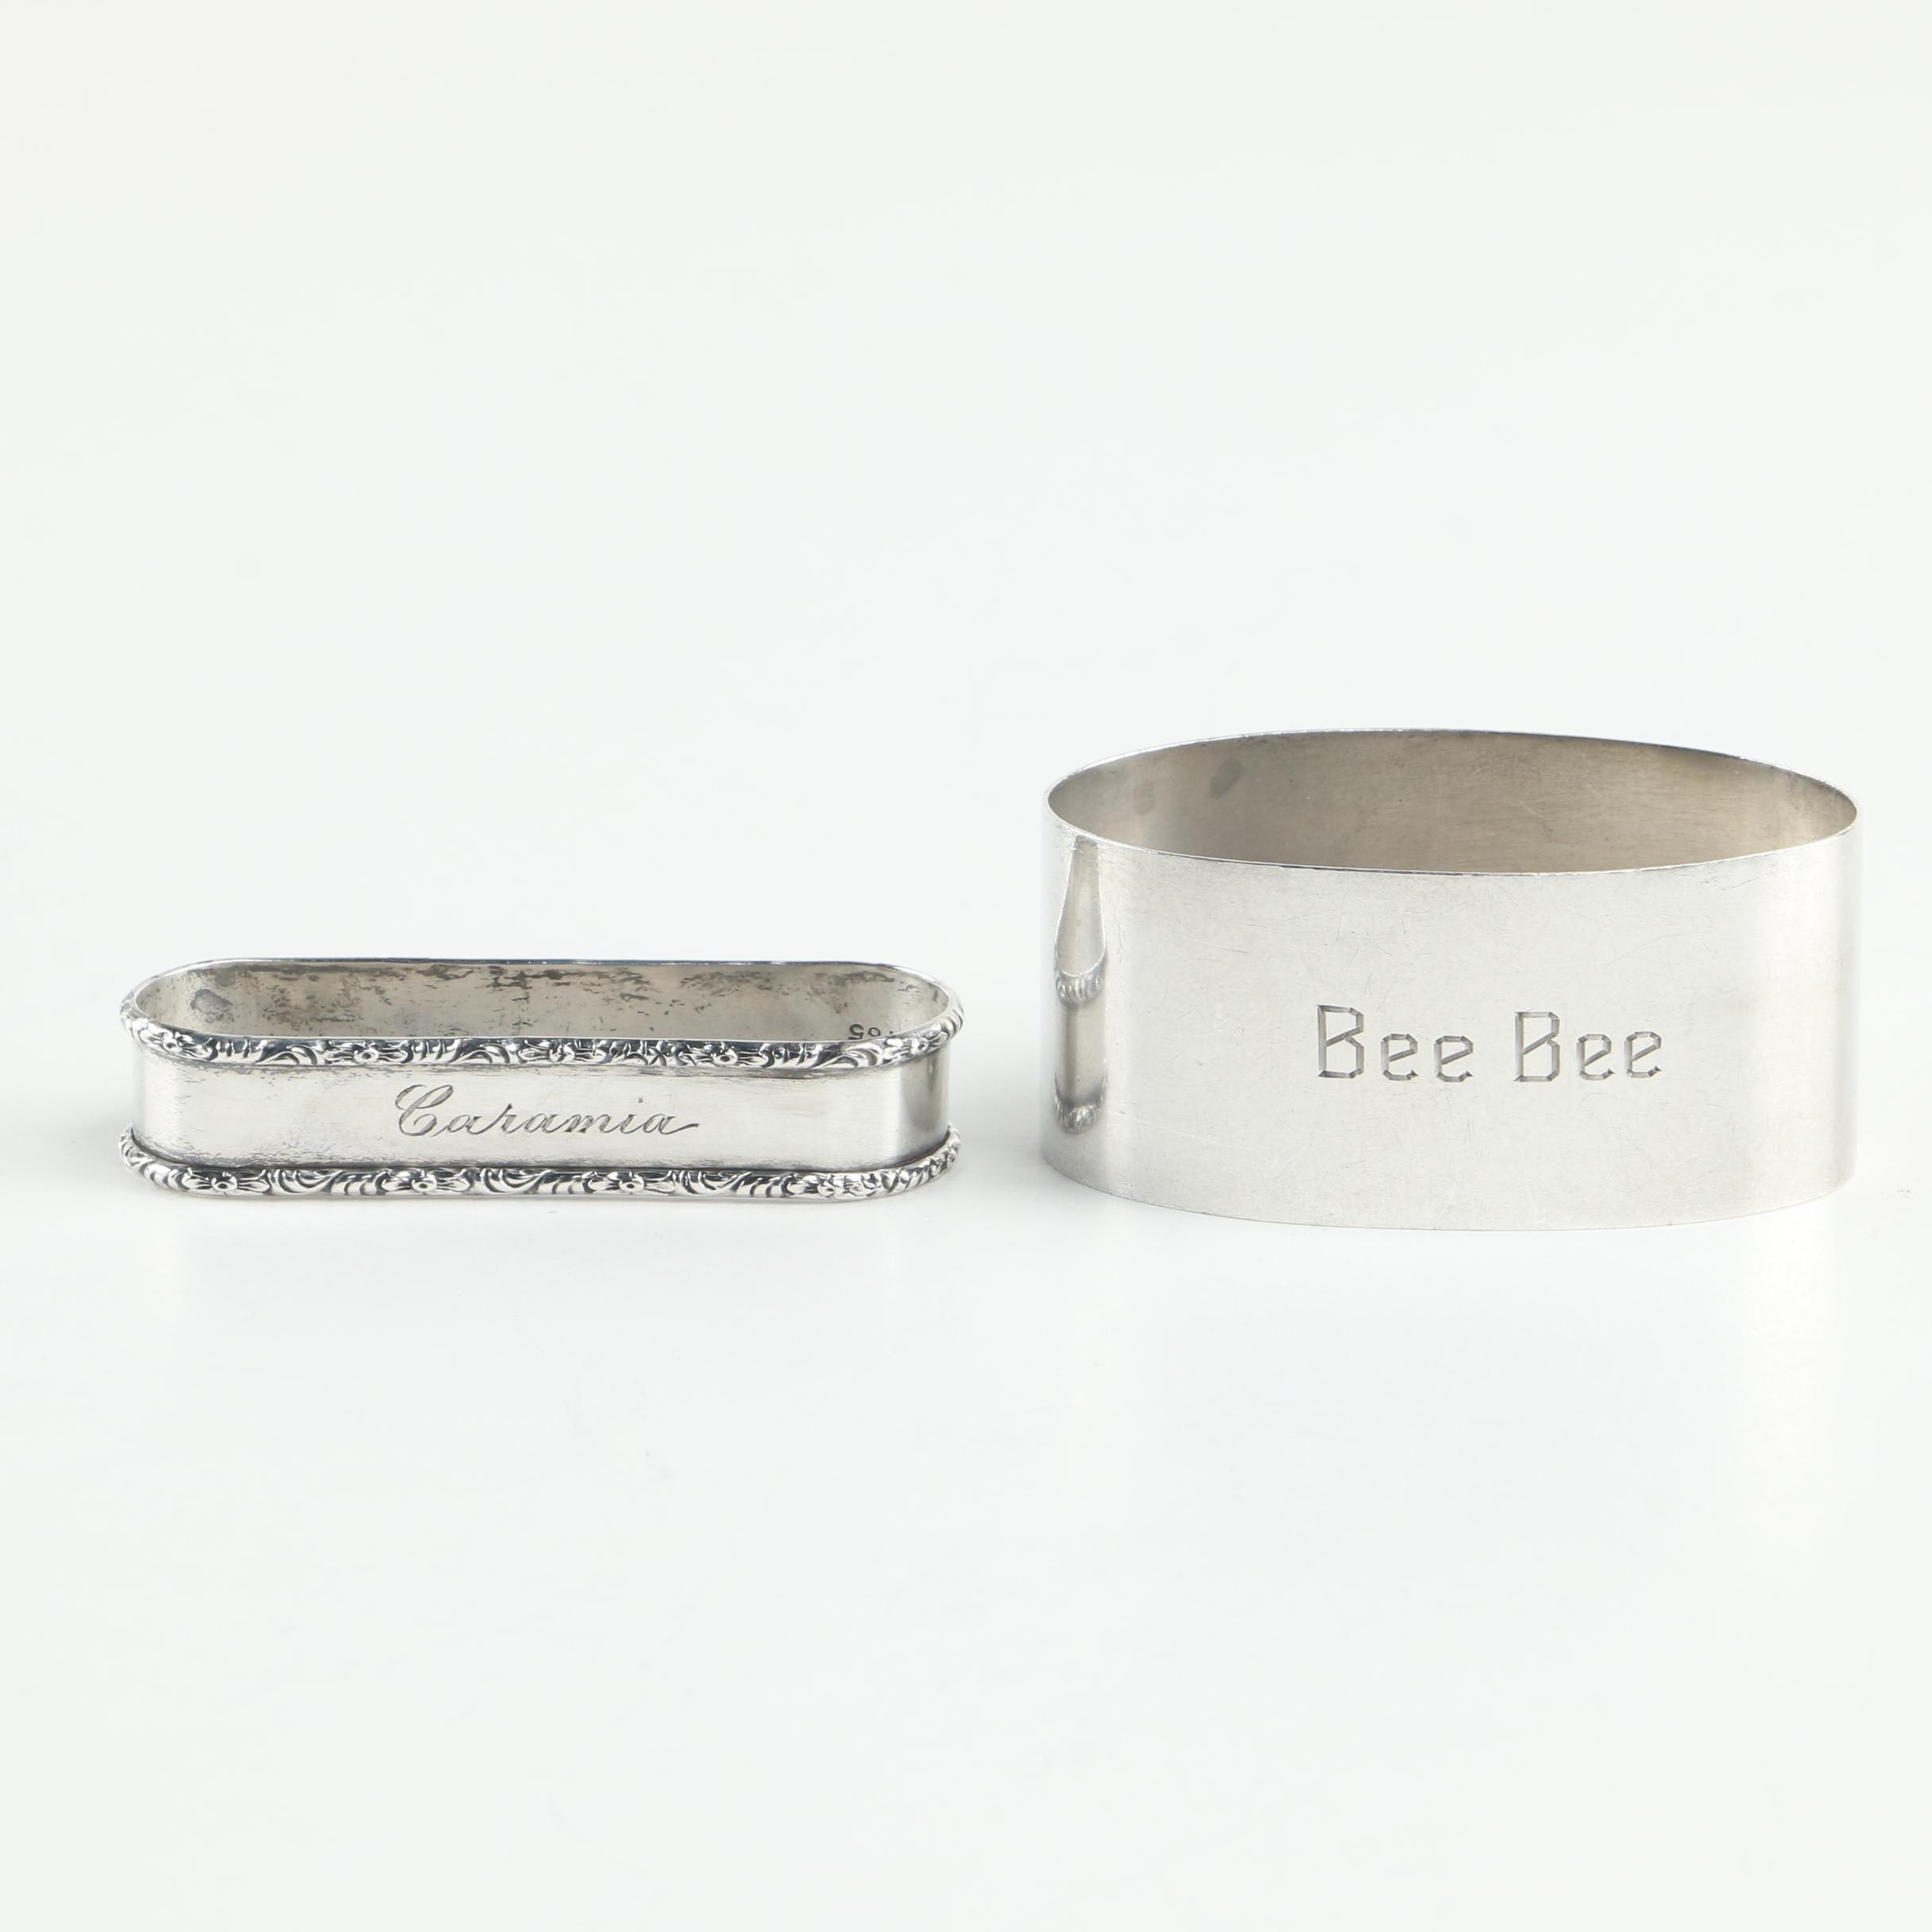 Shreve & Co. and Rogers, Lunt & Bowlen Co. Sterling Silver Napkin Rings